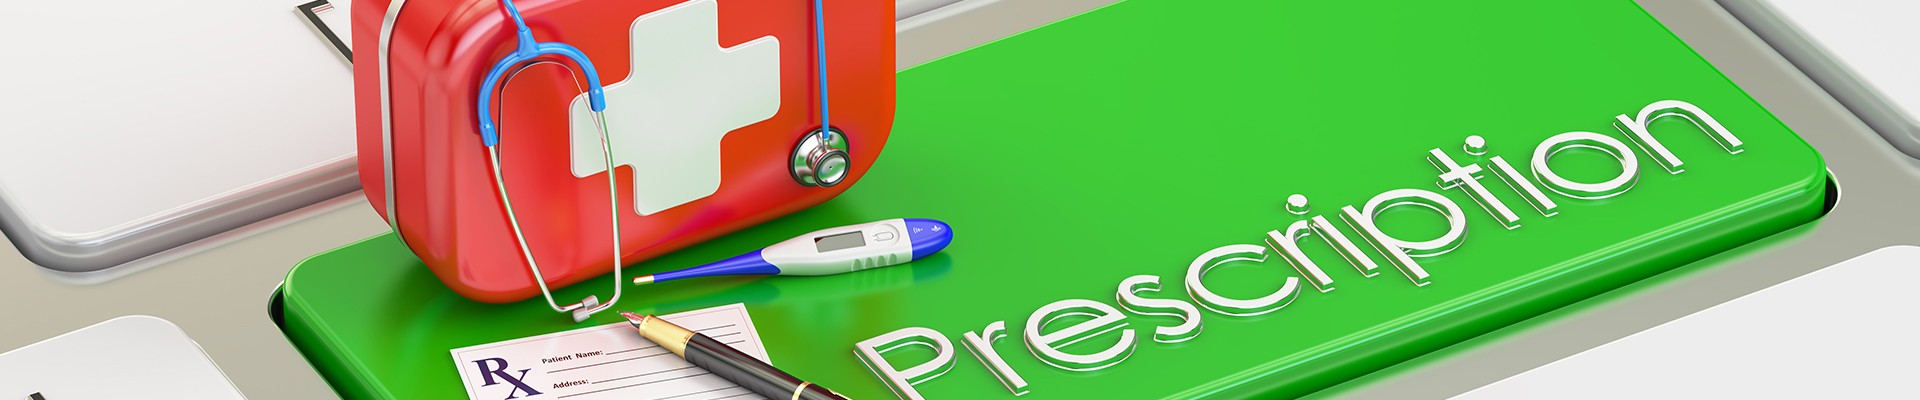 prescriptions and first aid